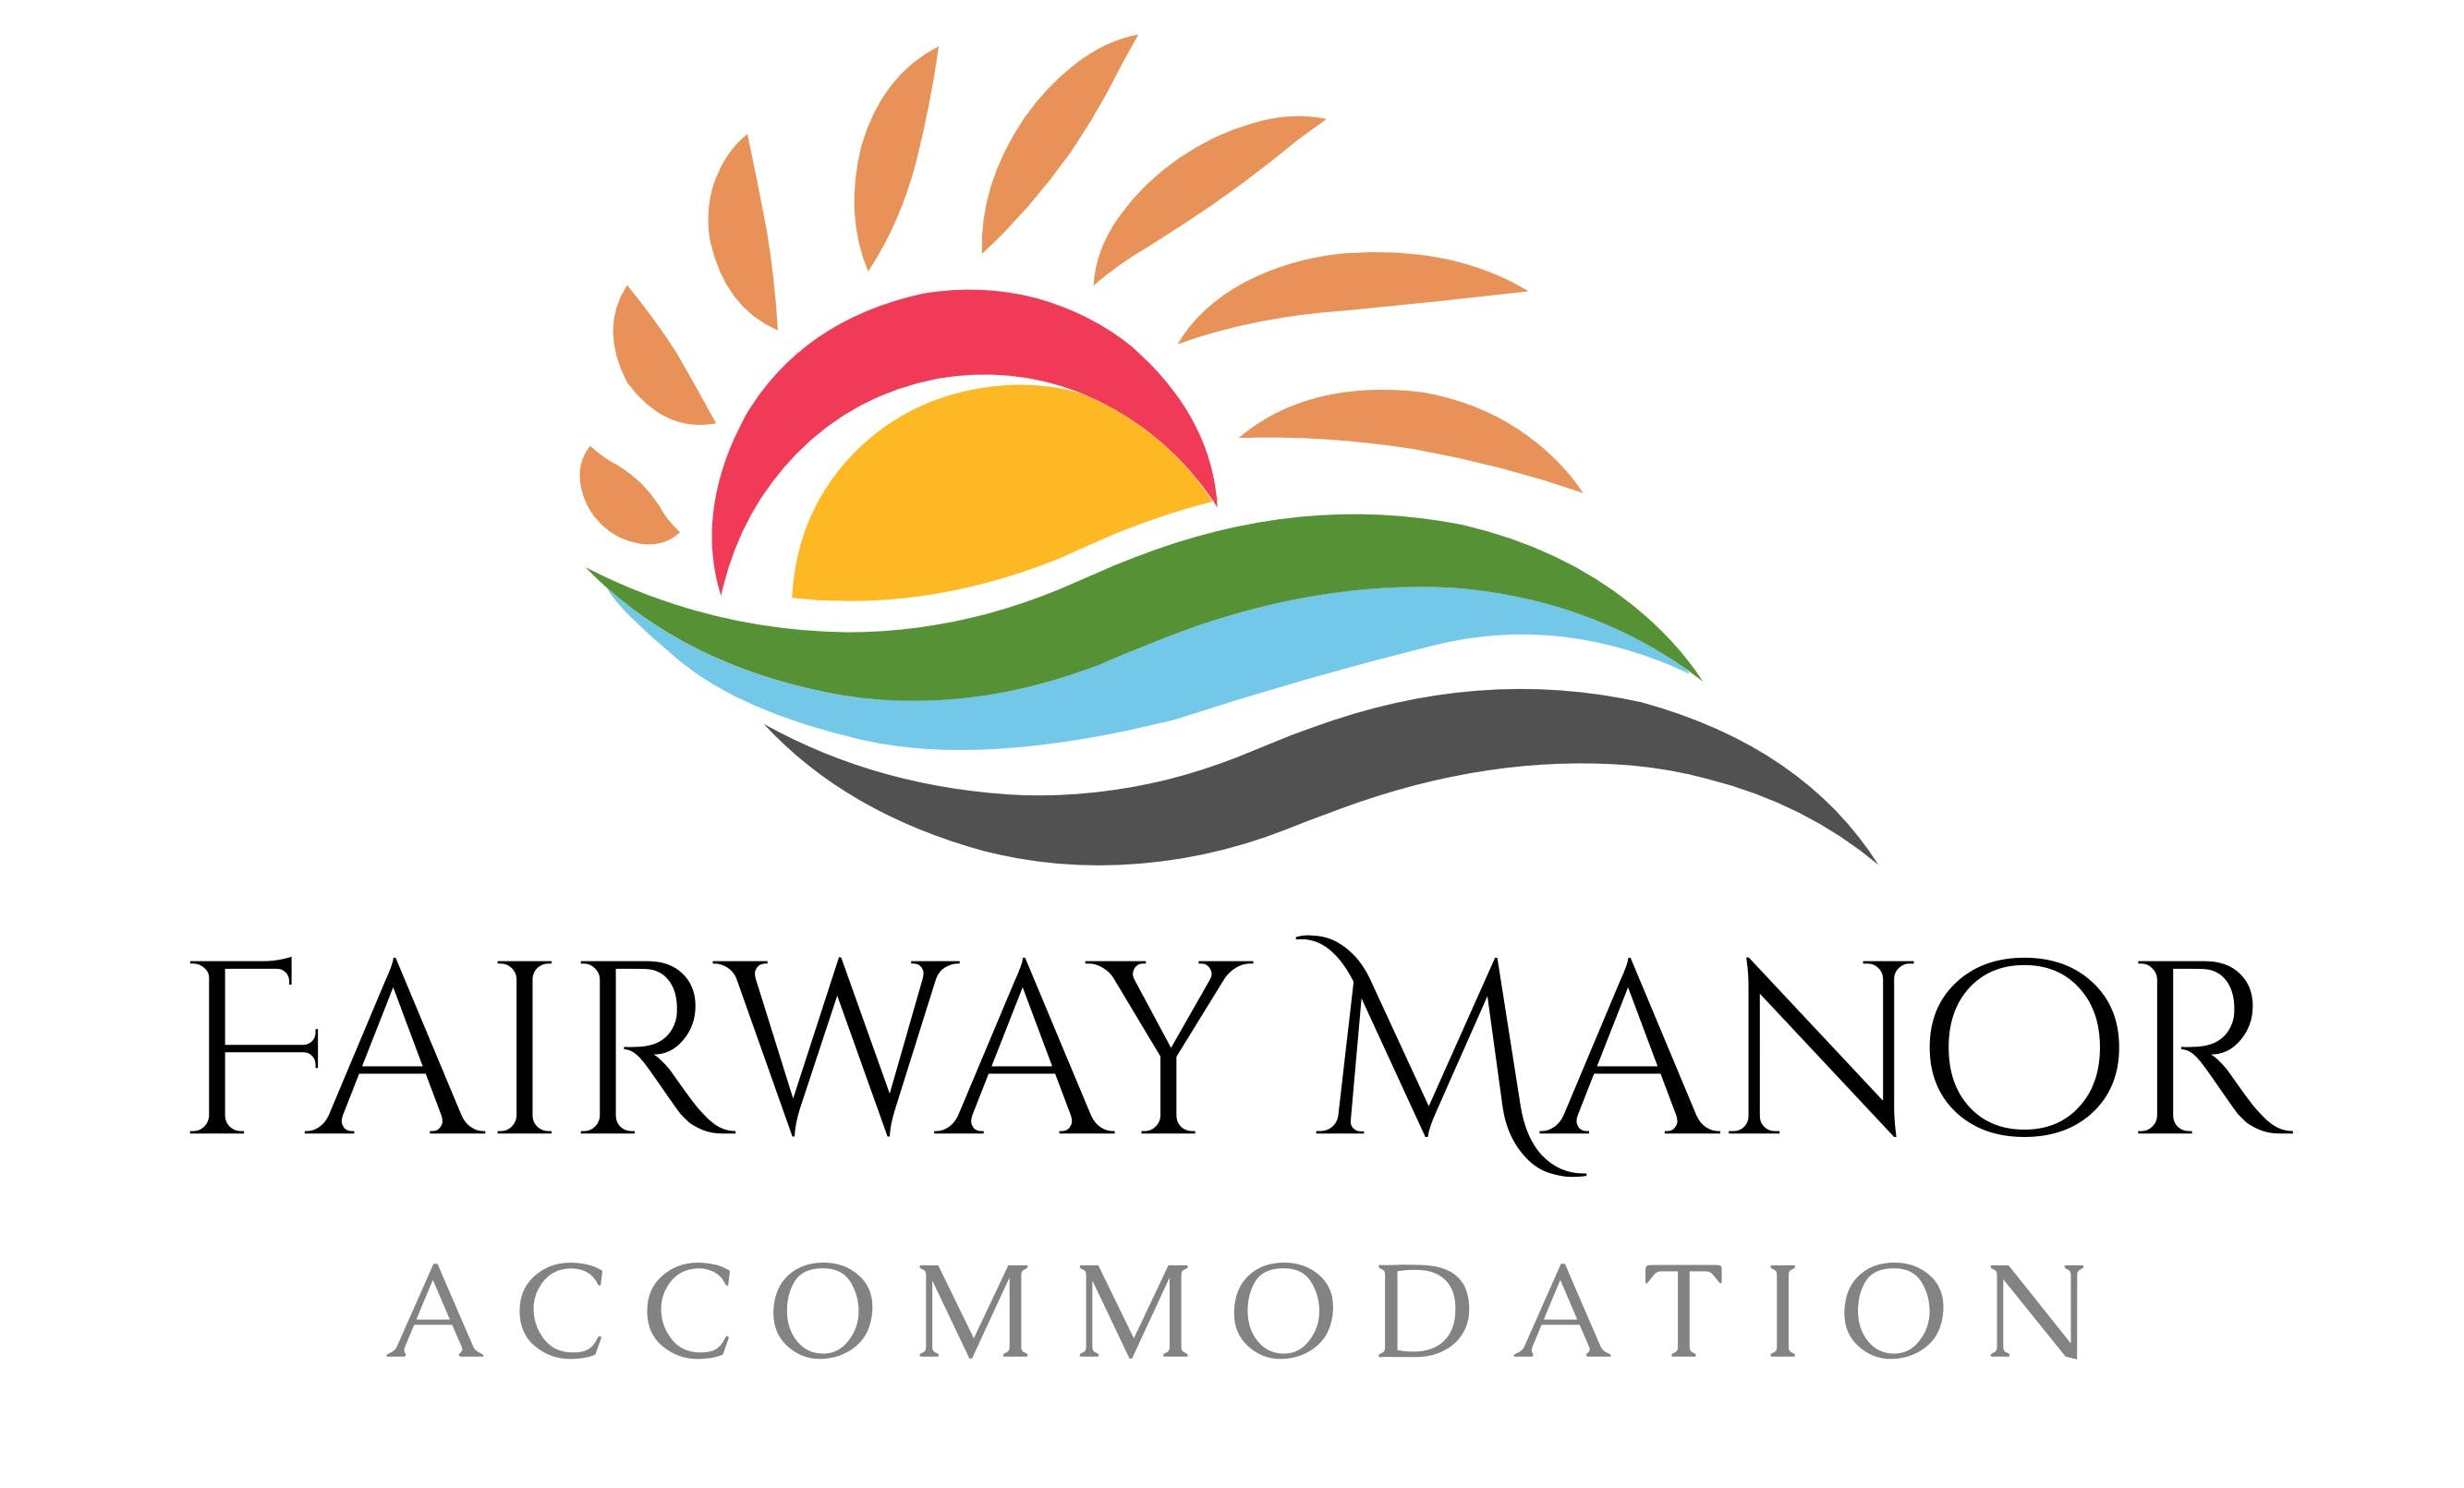 Fairway Manor Accommodation